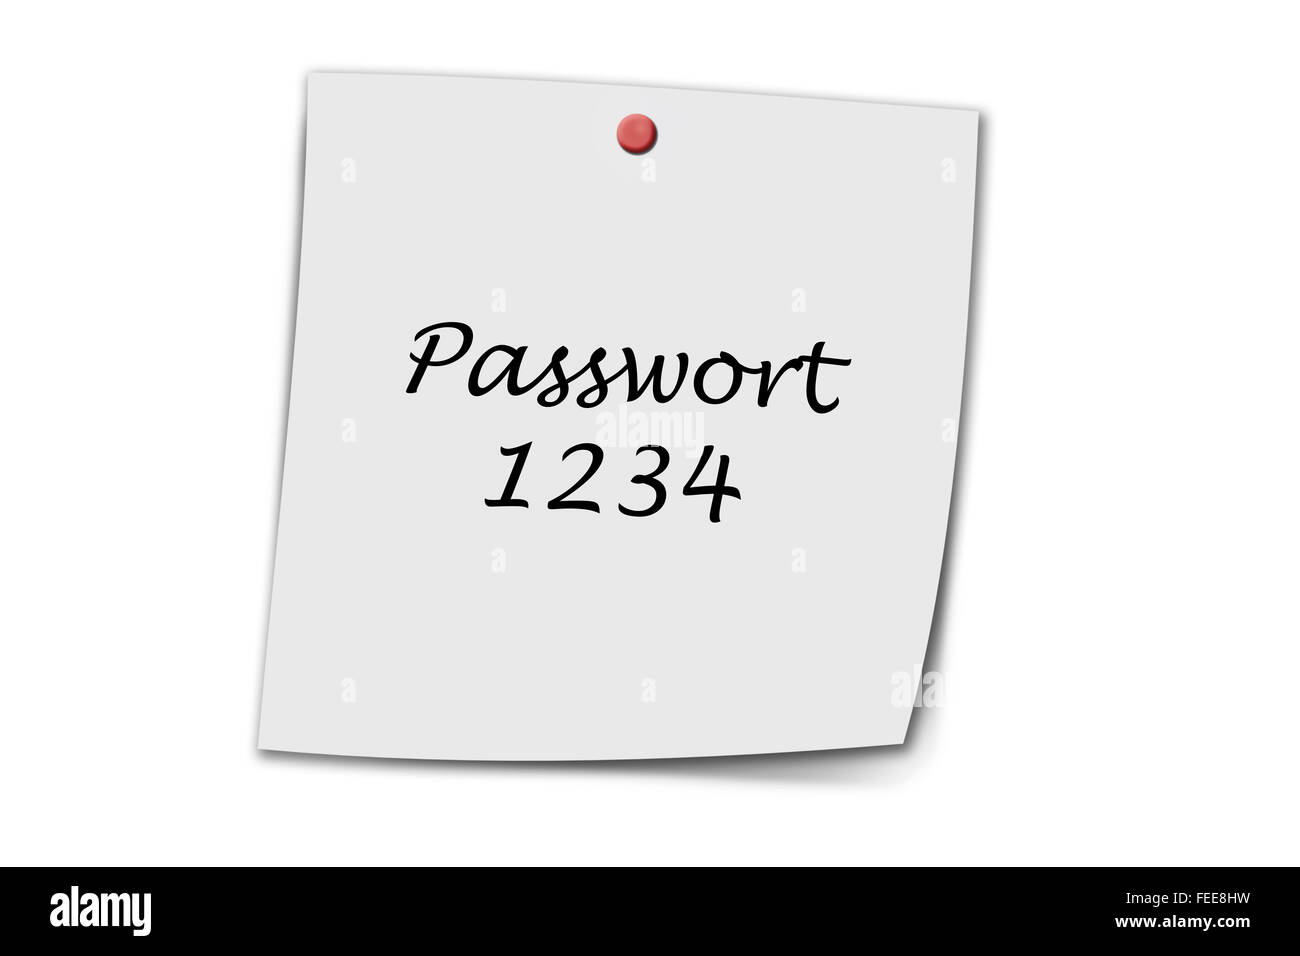 Passwort 1234 (German Password) written on a memo isolated on white - Stock Image